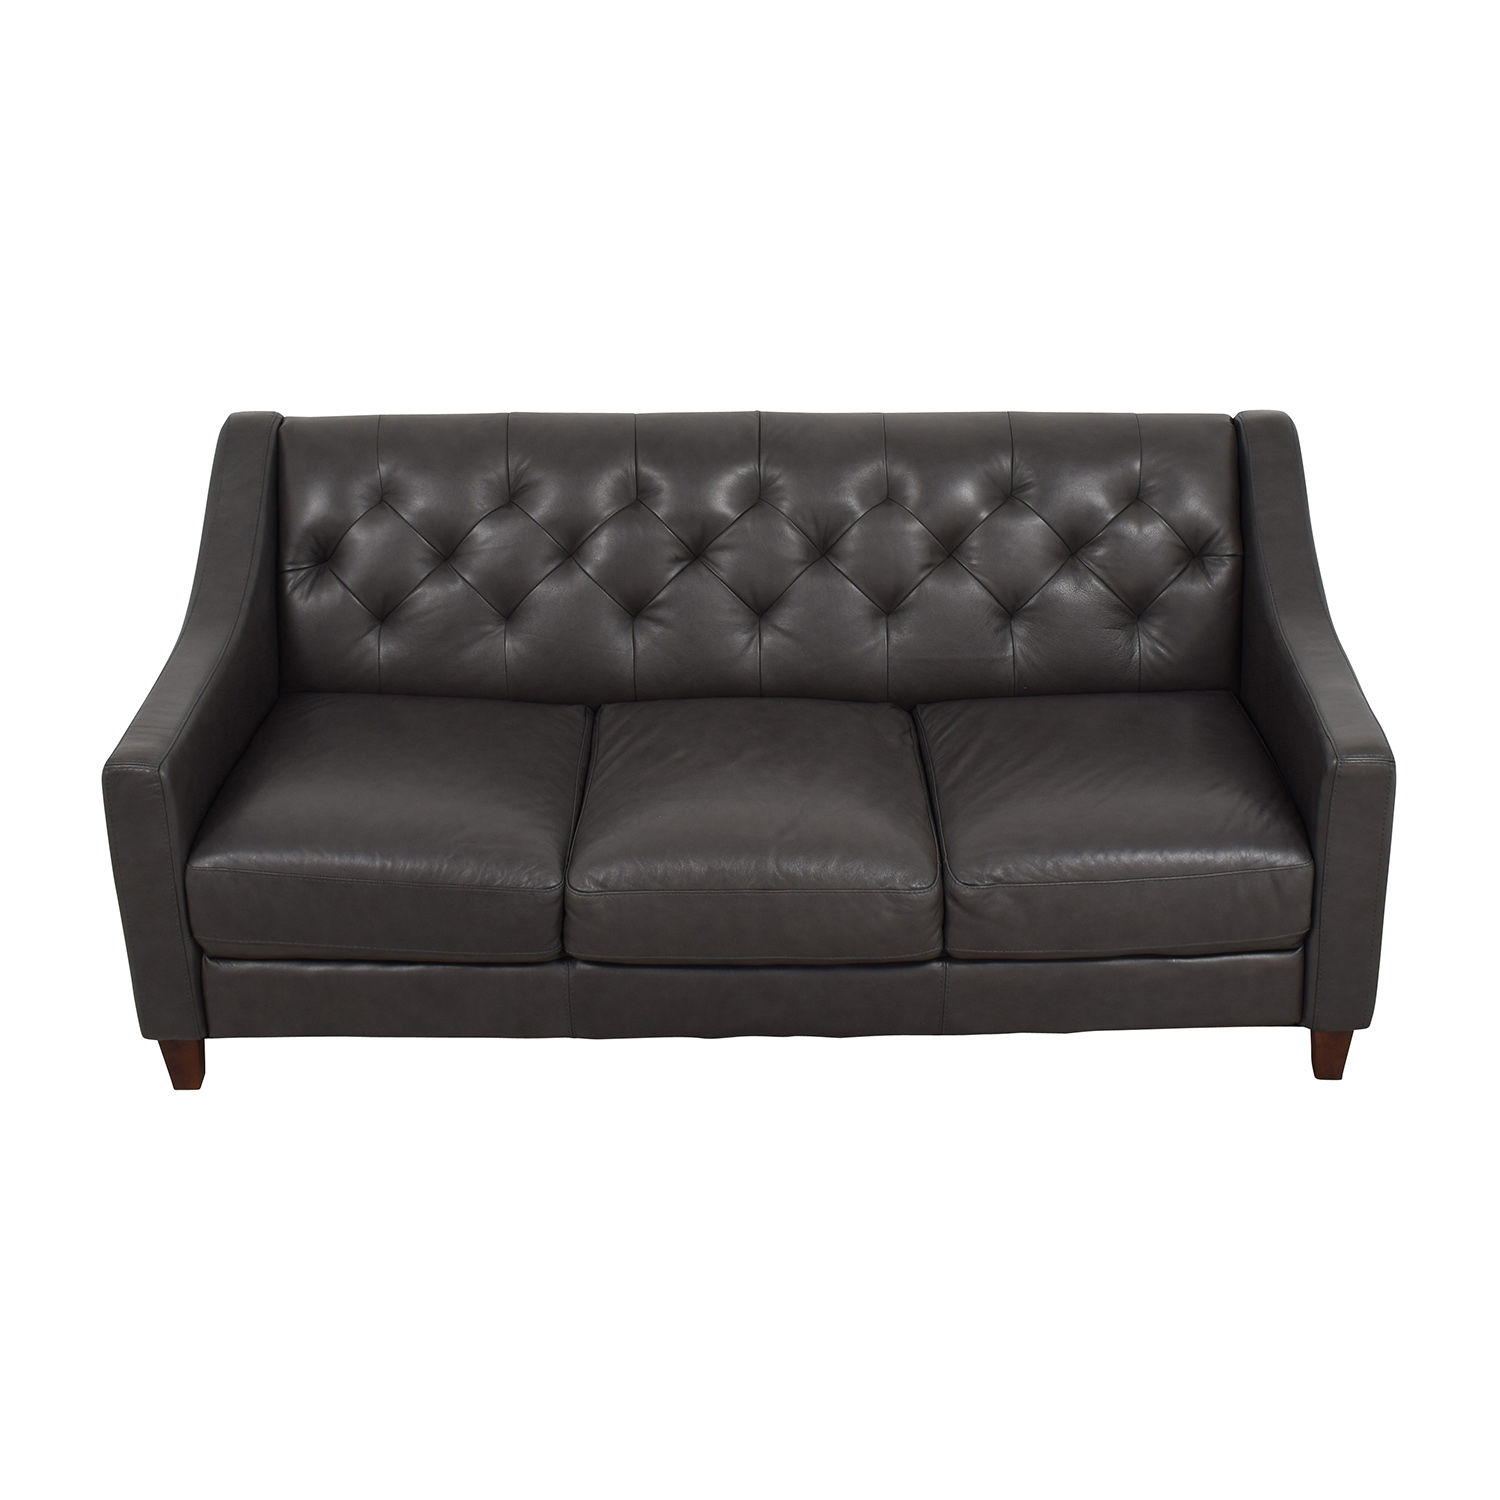 Peachy 69 Off Macys Macys Tufted Gray Leather Sofa Sofas Interior Design Ideas Gentotthenellocom